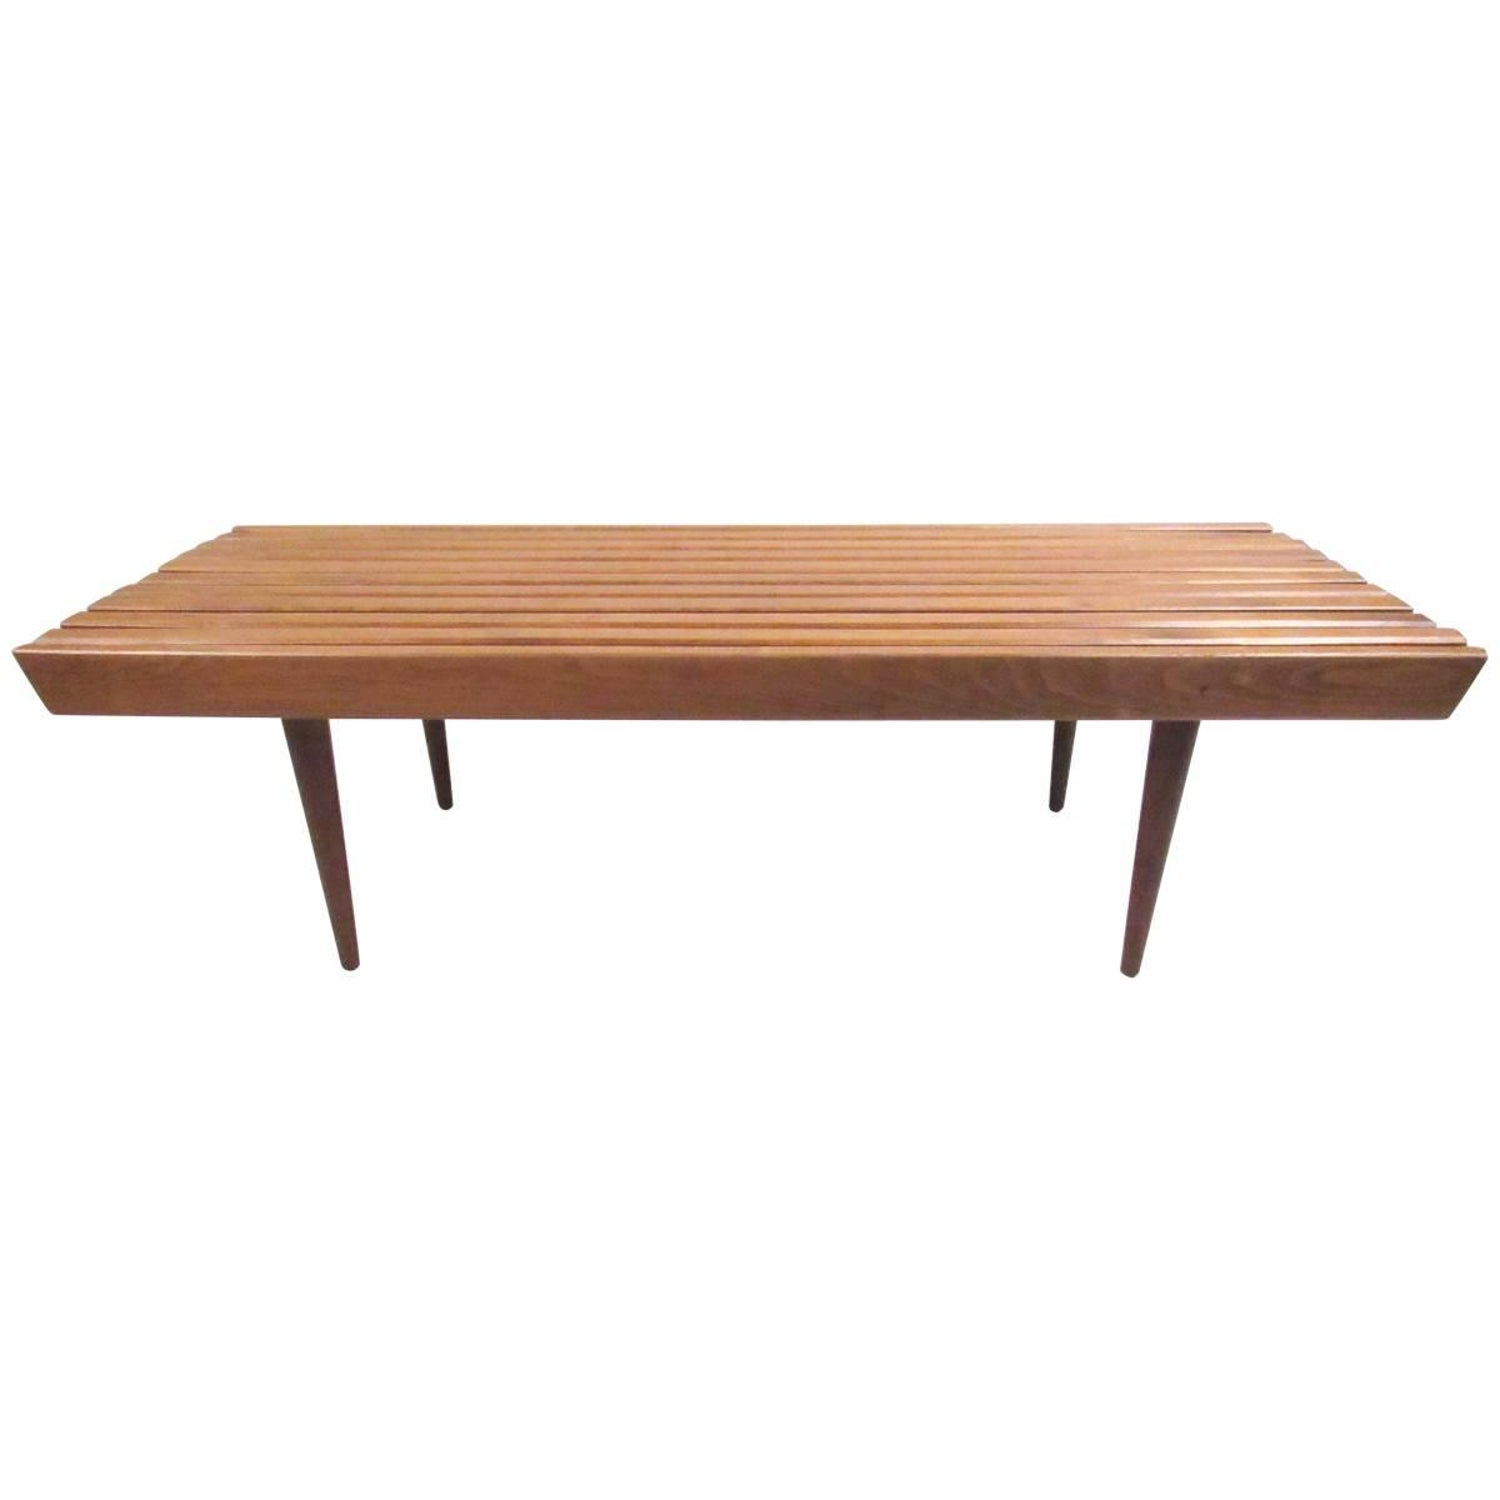 Mid Century George Nelson Style Wood Slat Bench Coffee Table at